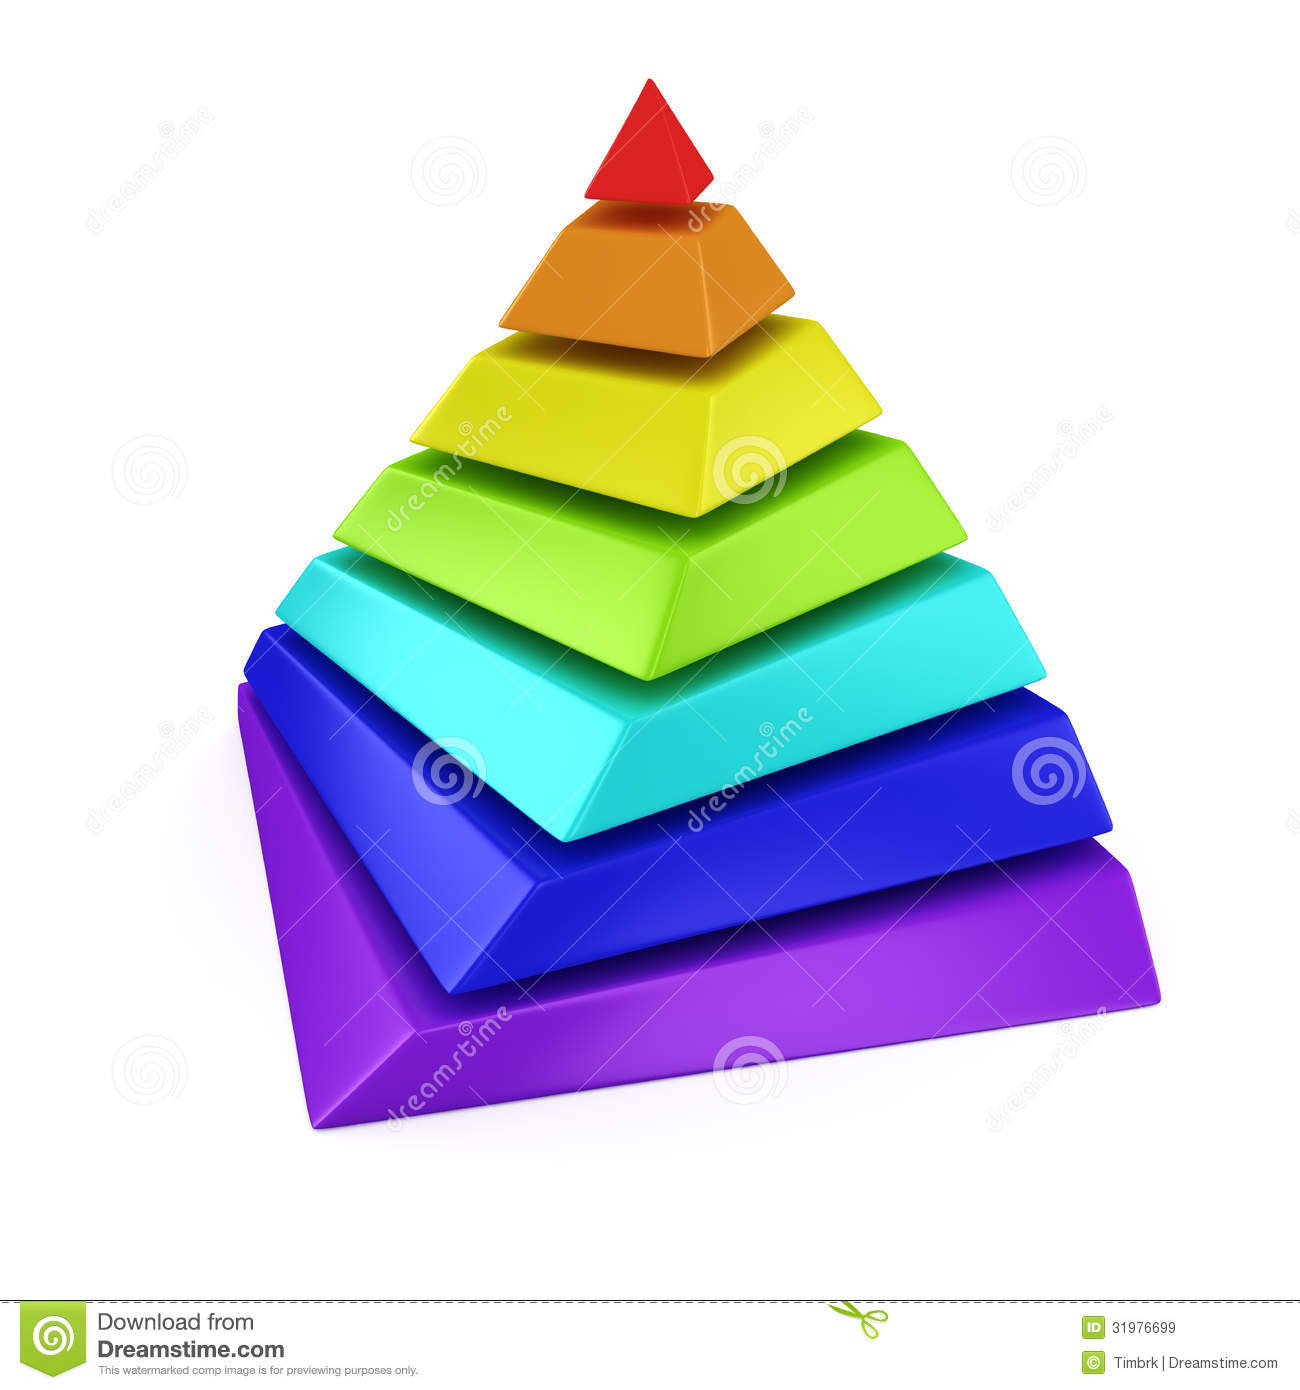 Maslows hierarchy of needs stock illustration illustration of maslow s hierarchy of needs ccuart Image collections